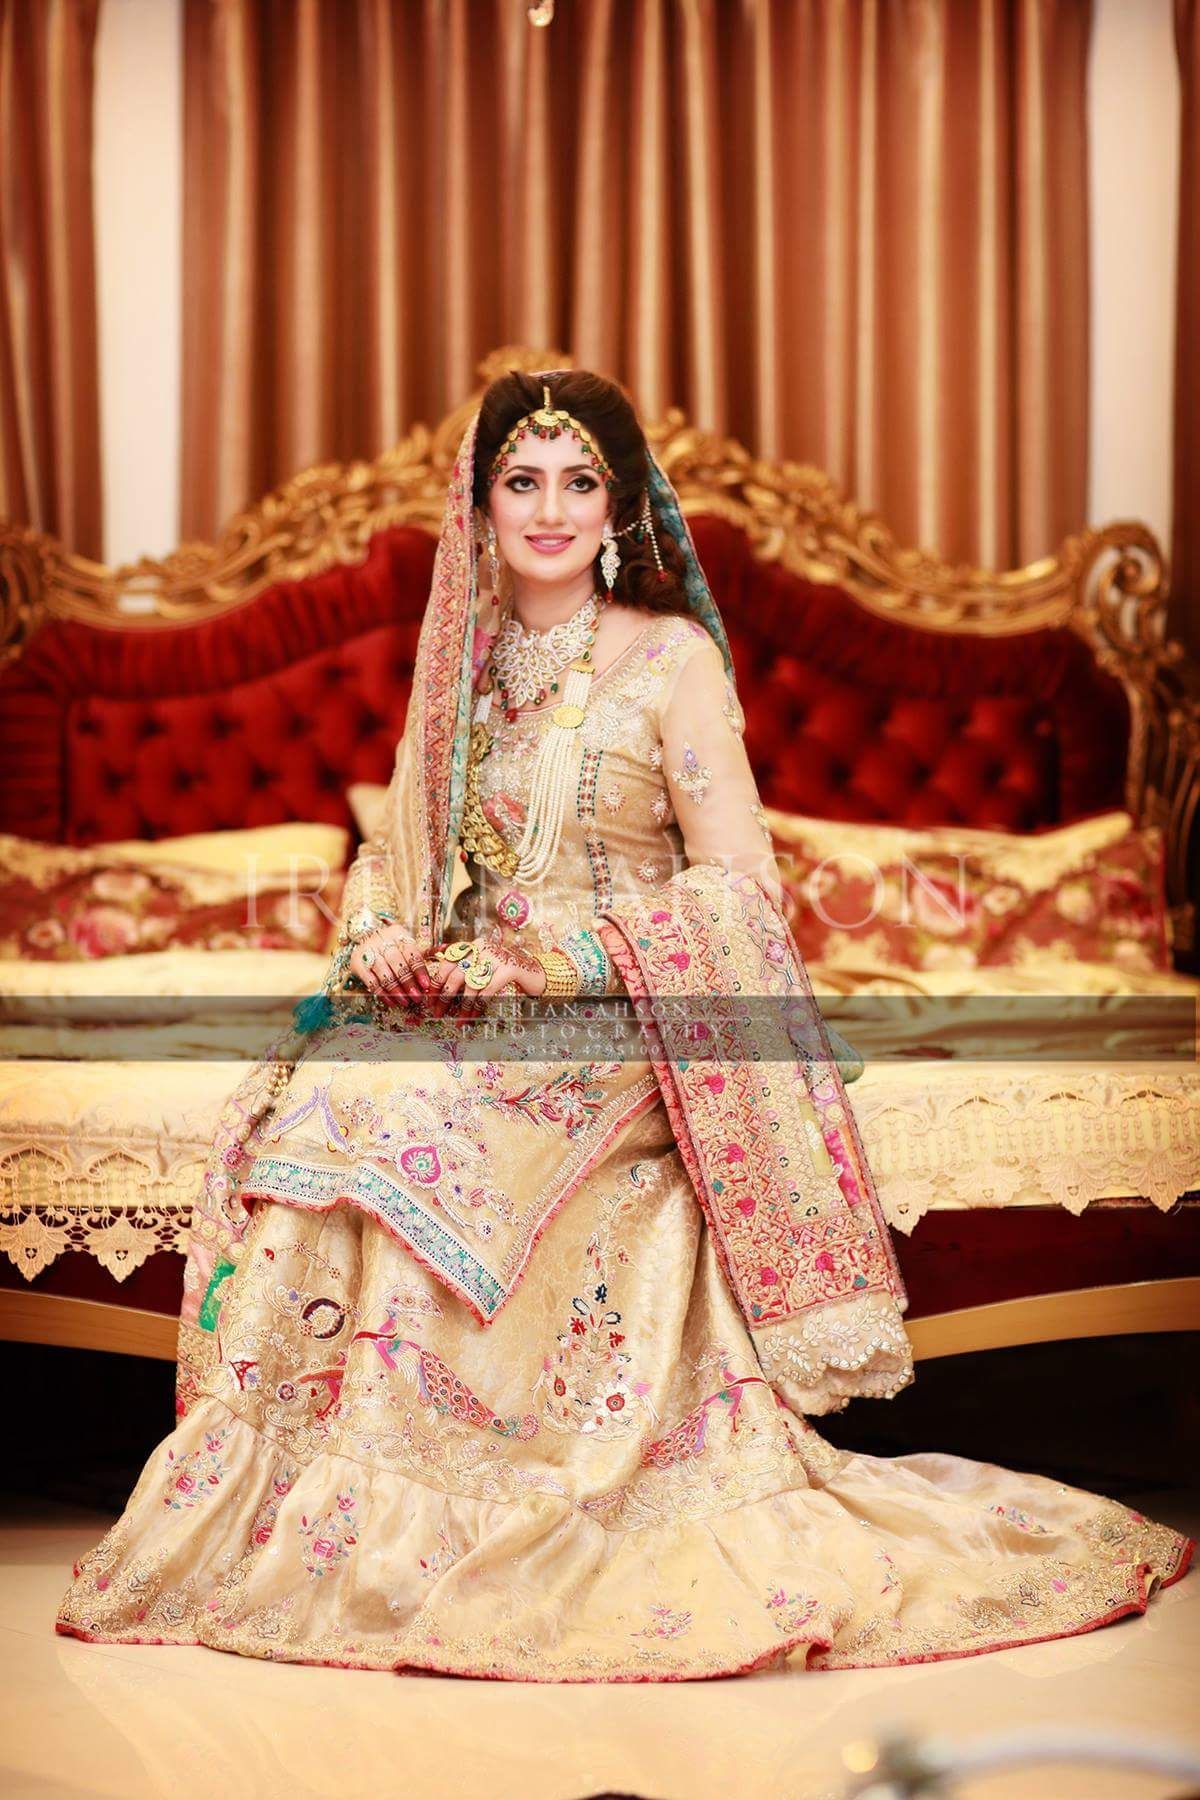 Irfan ahson travels for wedding photography - Makeup By Mariam Khawaja And Photography By Irfan Ahson Pakistani Wedding